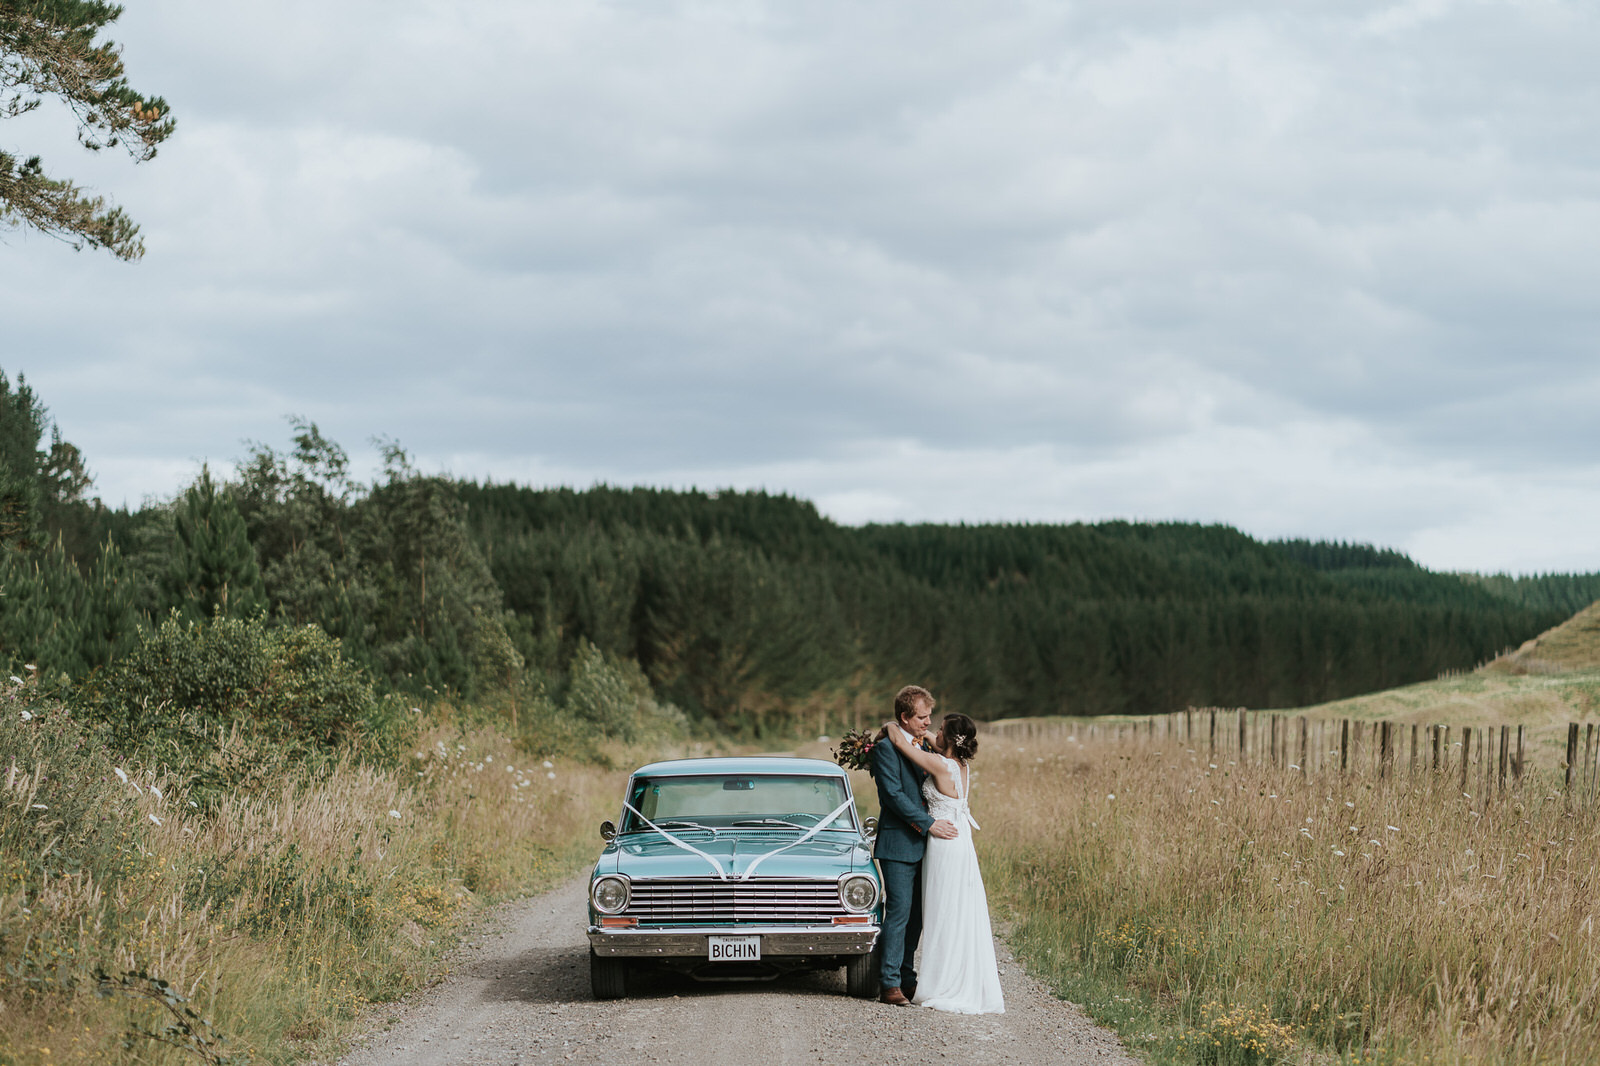 newfound-c-j-old-forest-school-wedding-1749-A9_07535